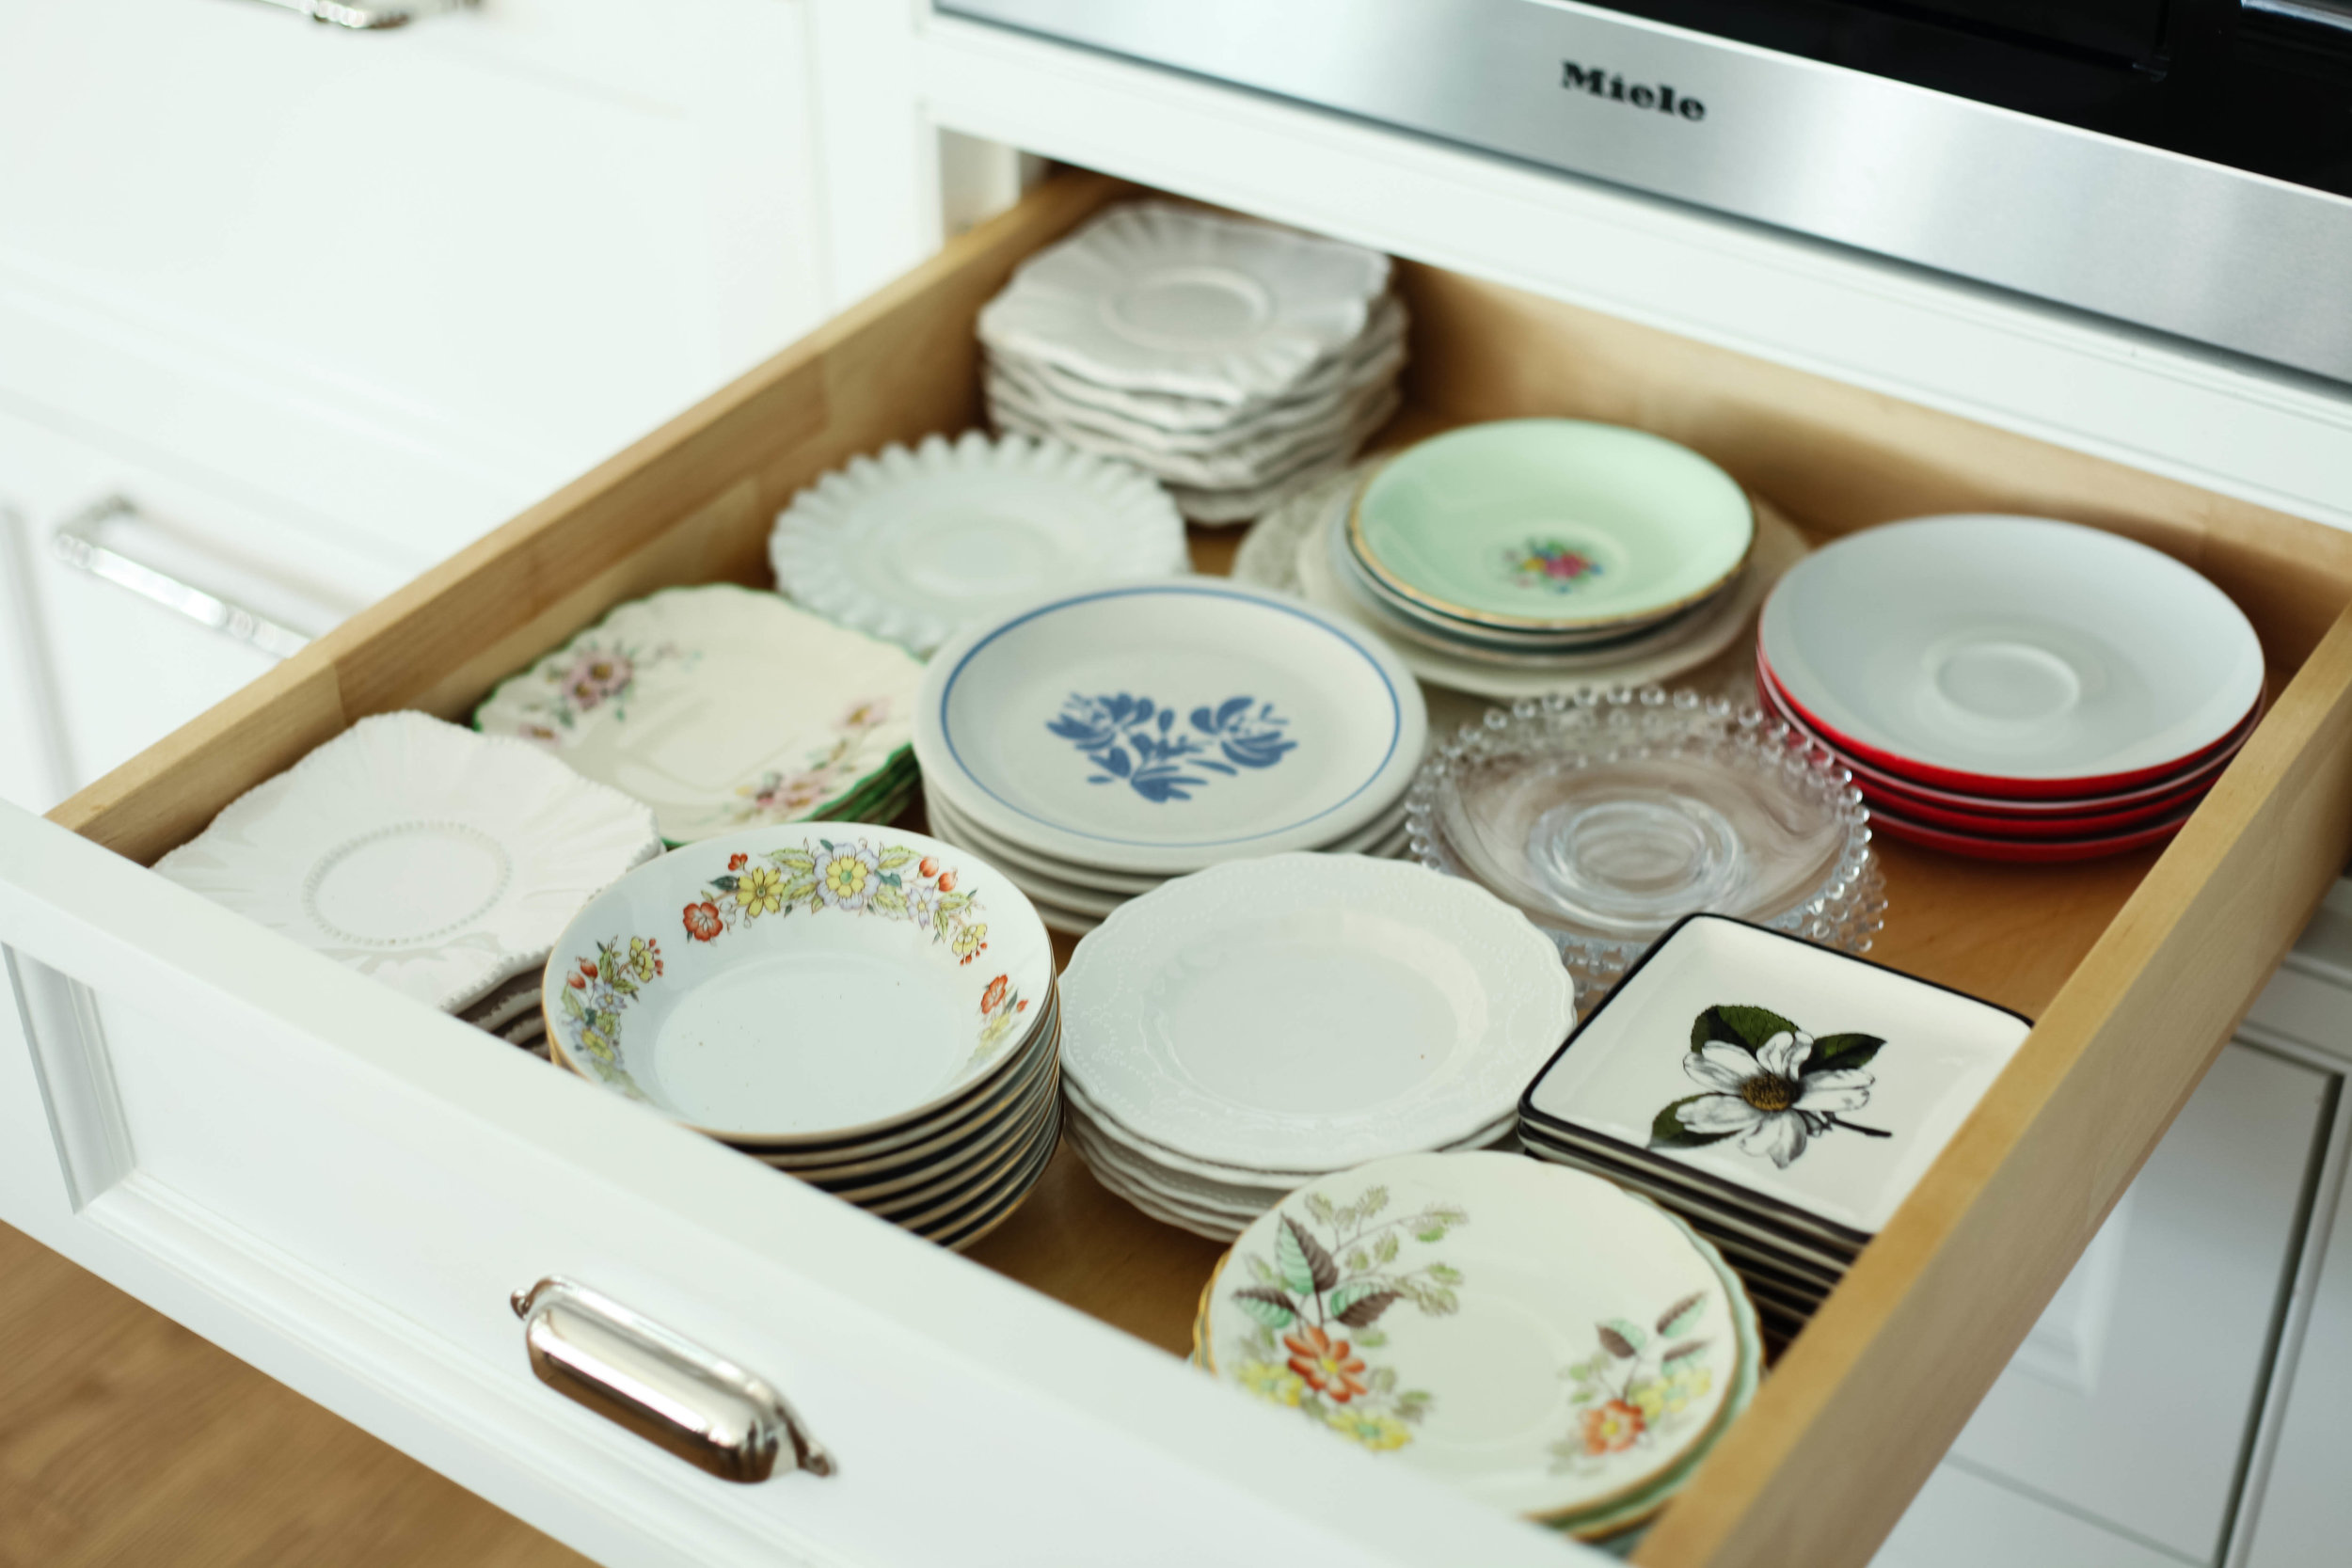 Style tip: A collection of small plates stacked inside a drawer. You can't display everything on shelves, but this way you can see what plates you have and easy to put away.